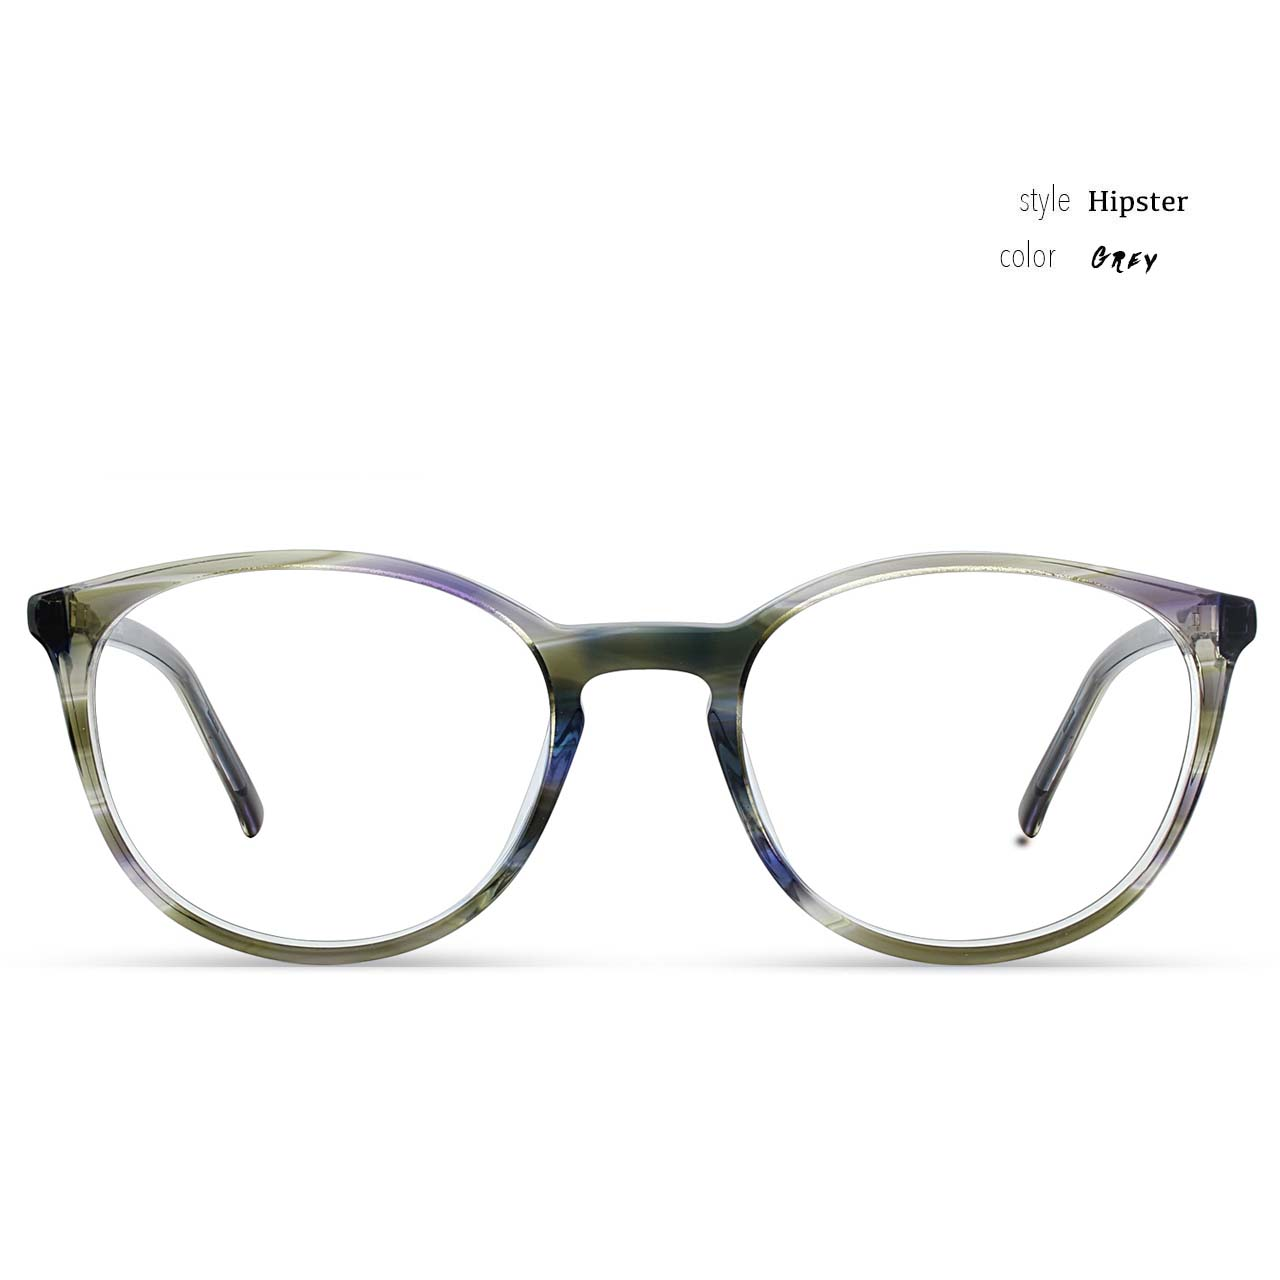 4b7075fa03 Affordable + Stylish Designer Rx Eyeglasses and Sunglasses